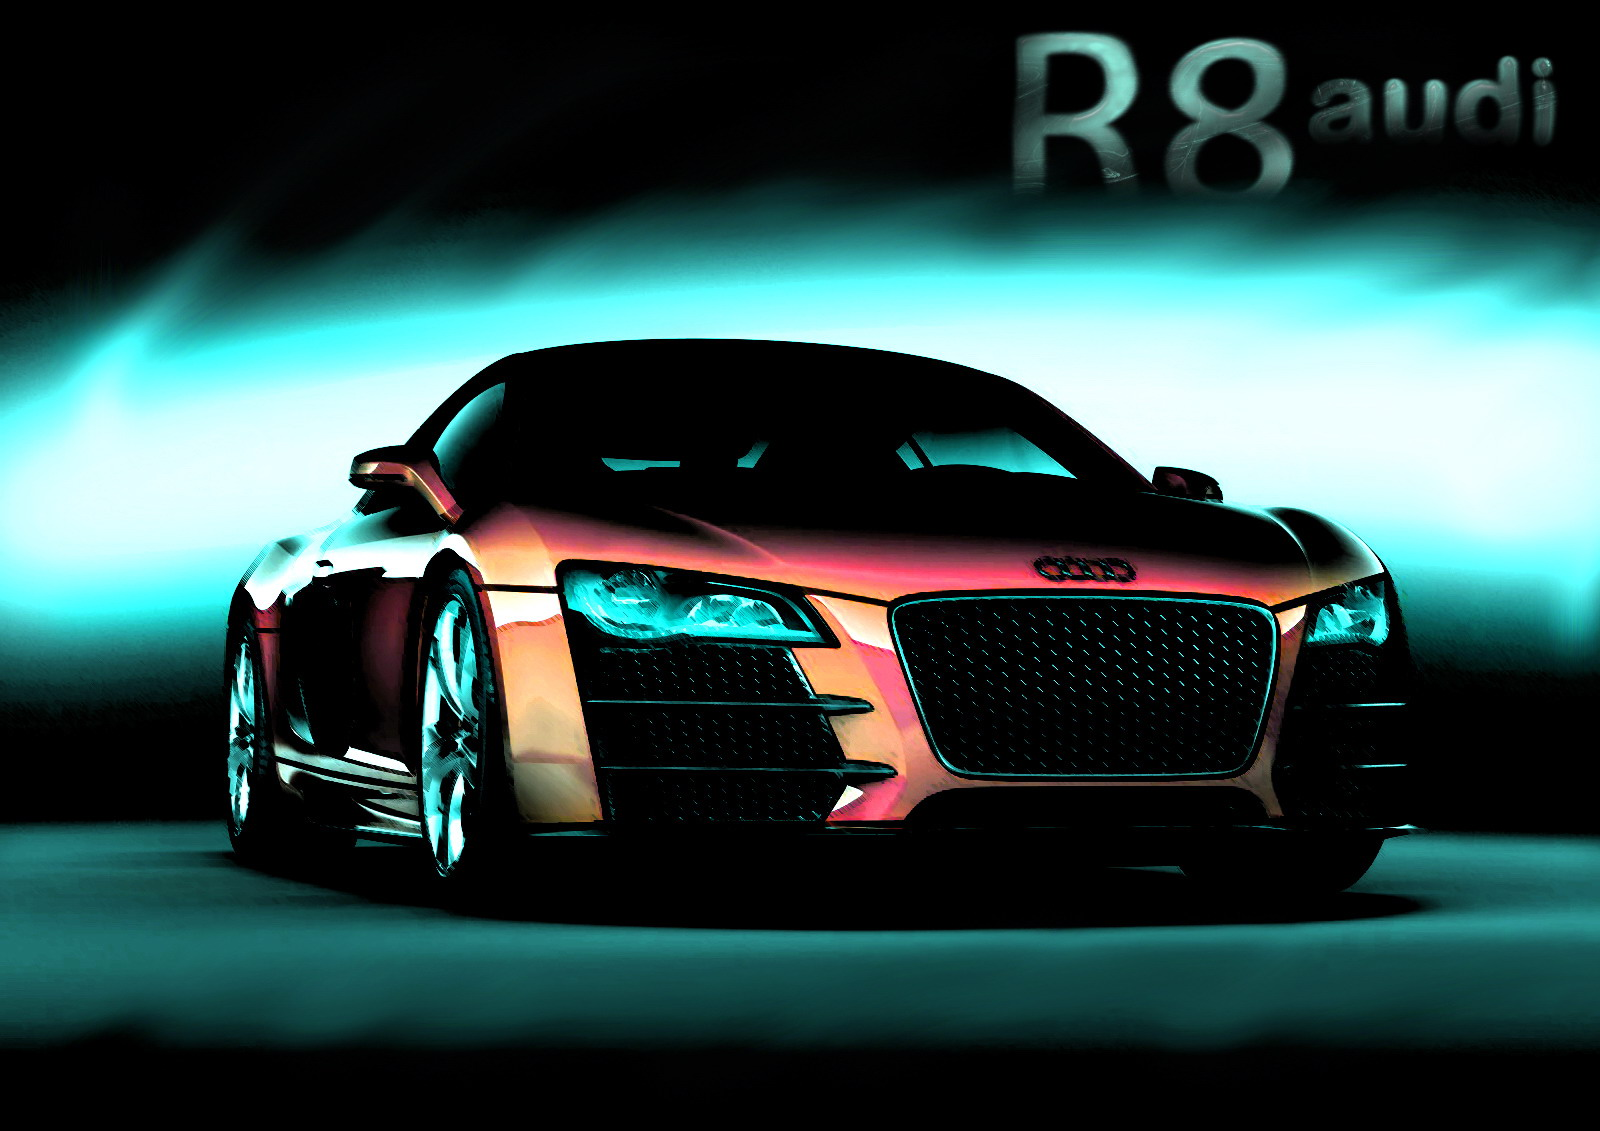 full hd audi wallpapers 178 Full Hd Audi Wallpapers 1600x1131